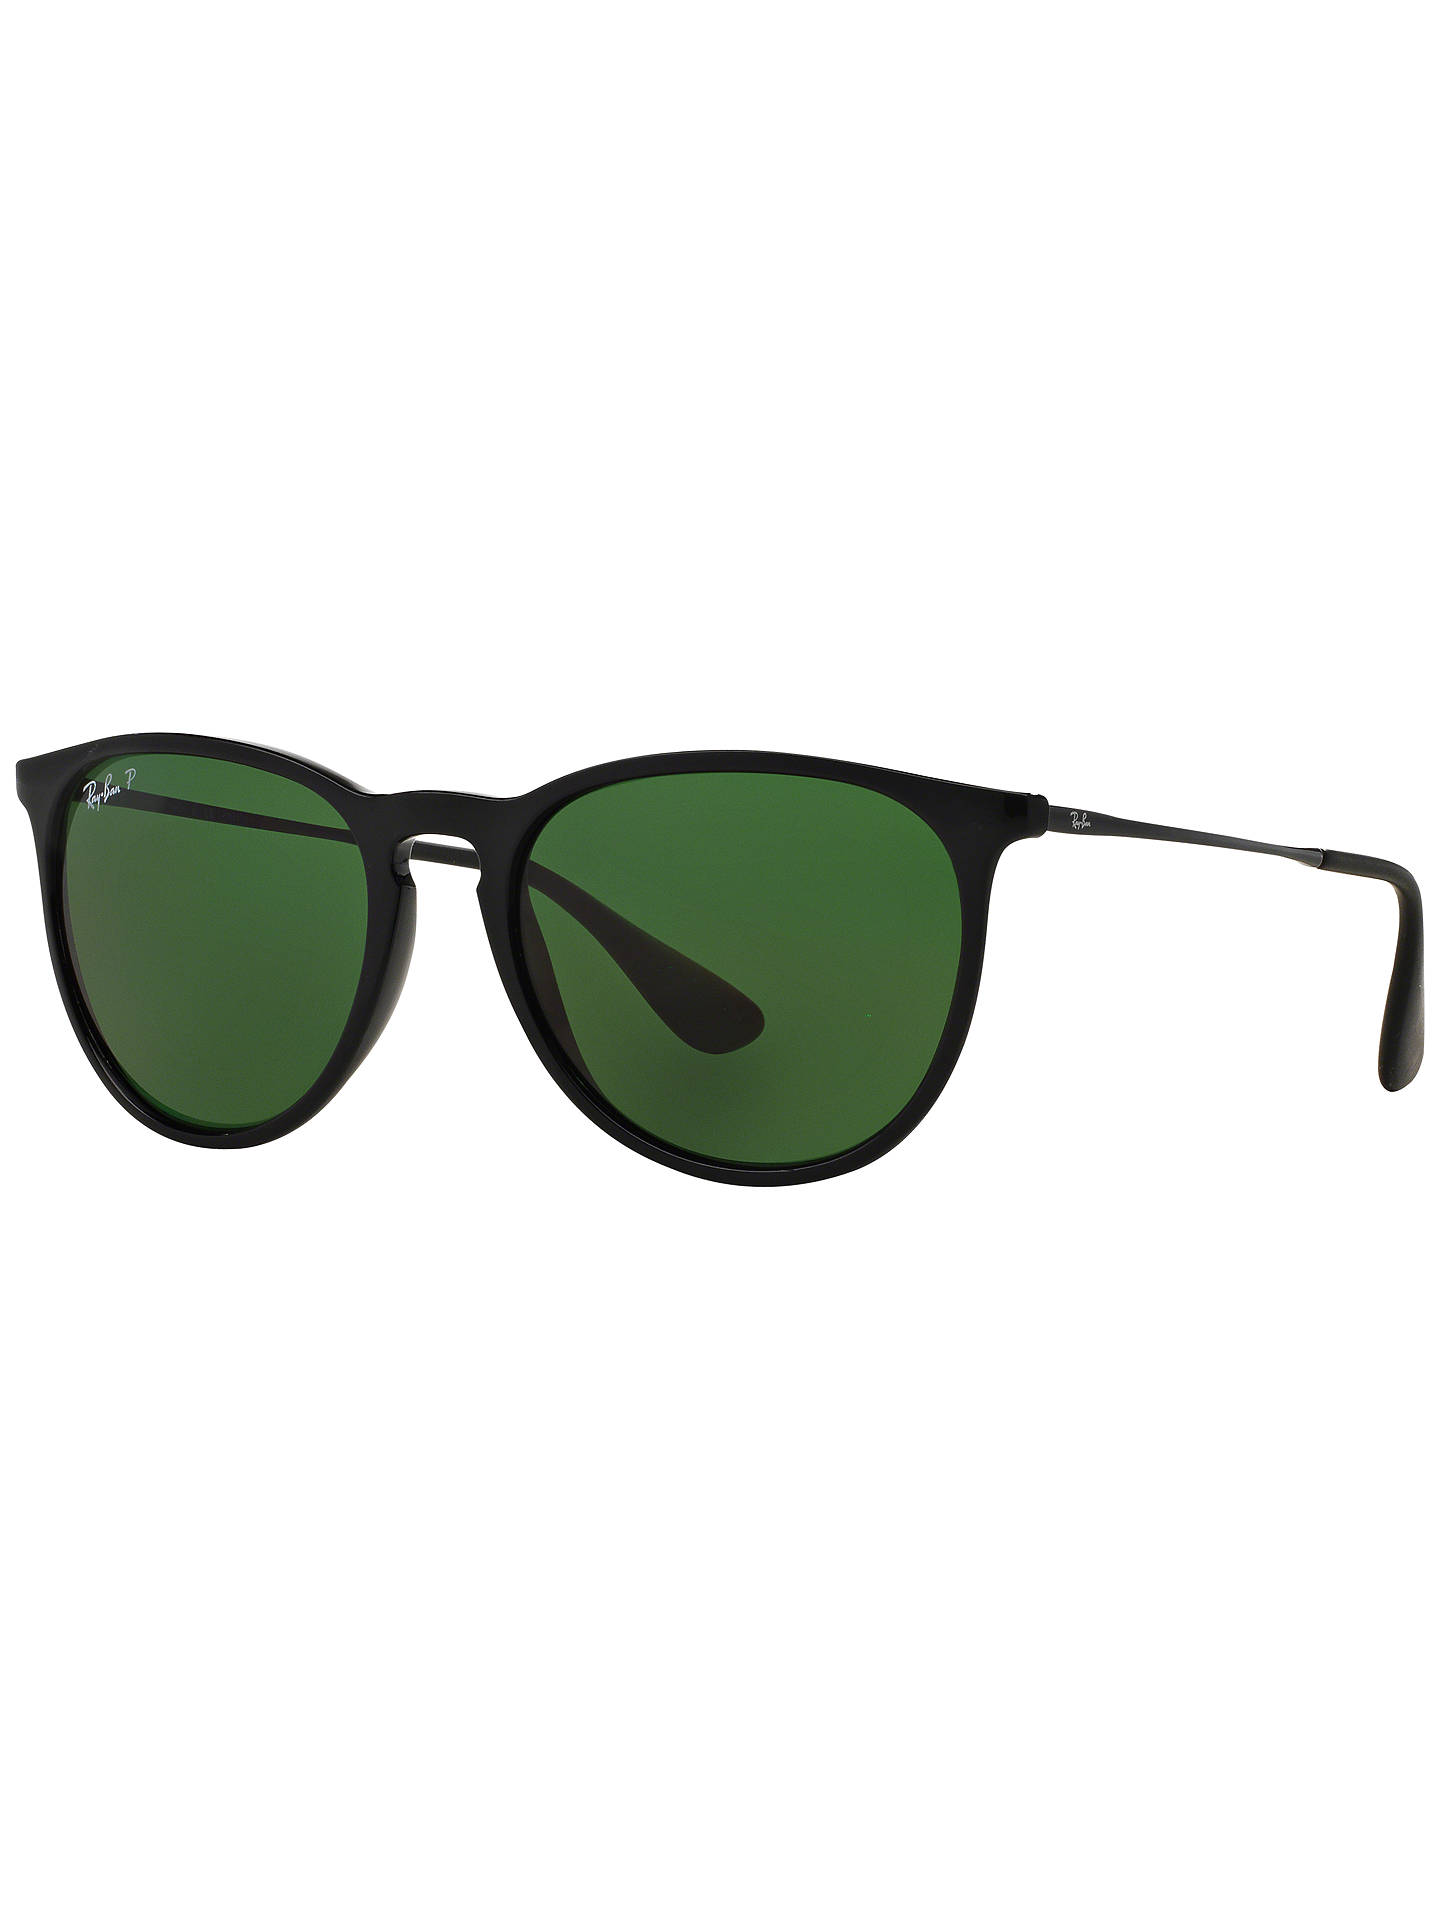 db37ee9f2 Buy Ray-Ban RB4171 Women's Erika Polarised Oval Sunglasses, Black/Green  Online at ...